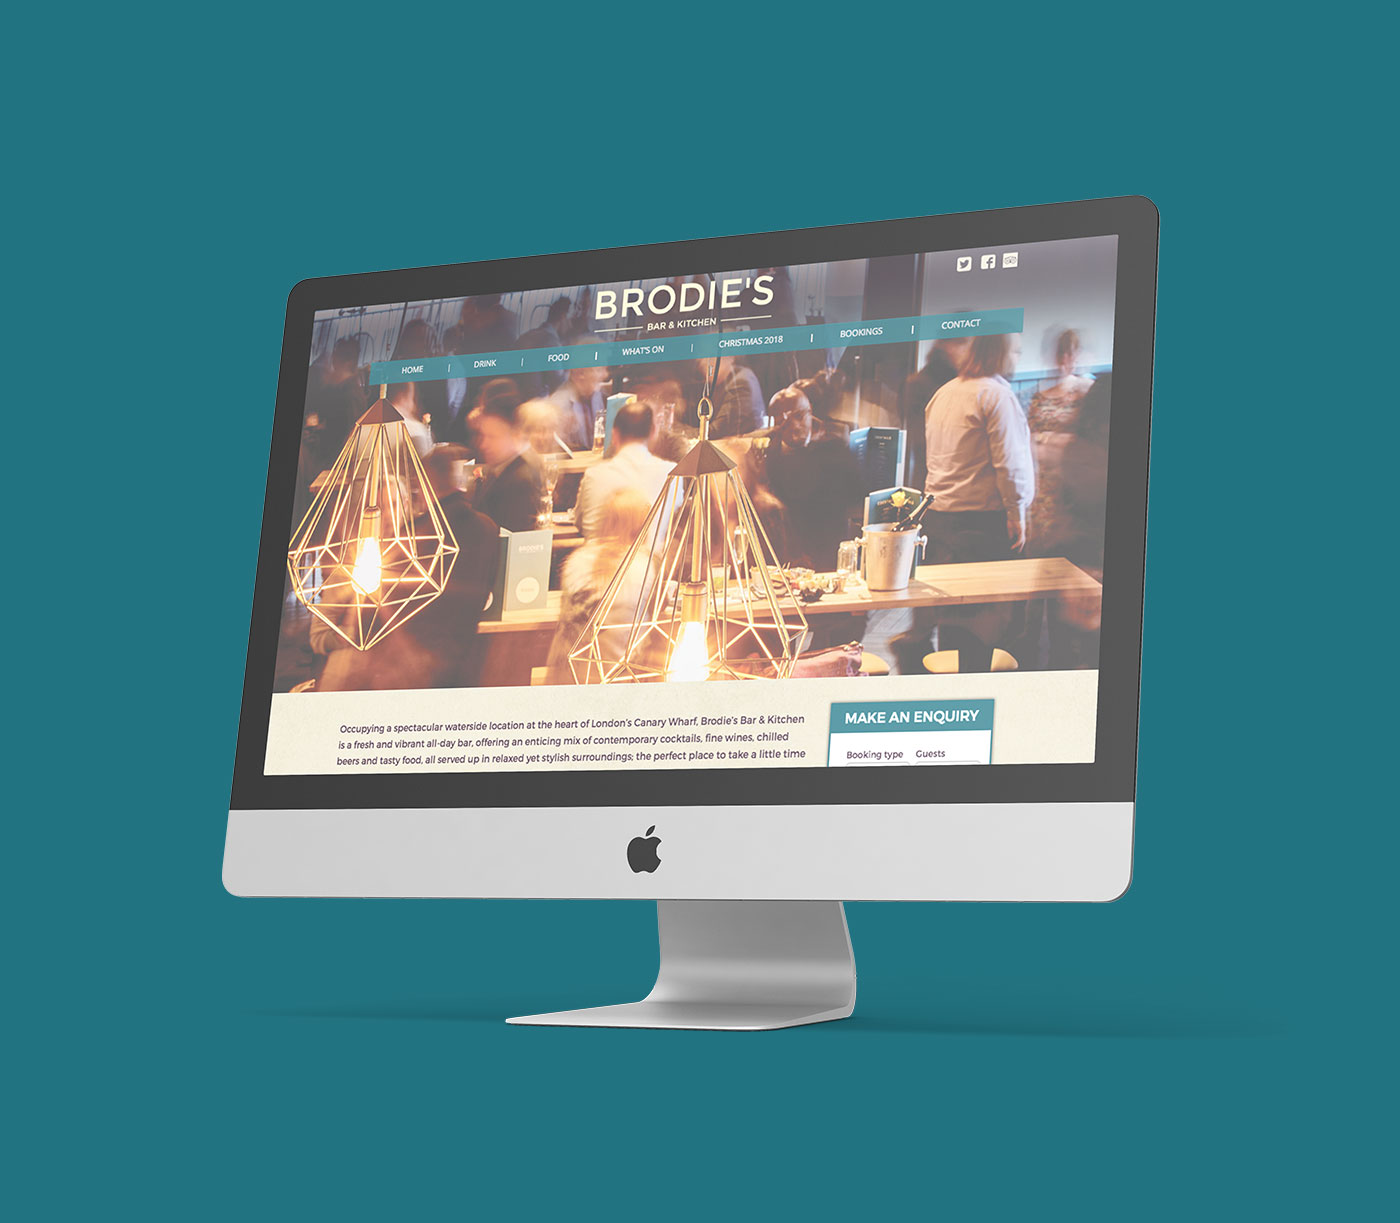 brodie's | web design - Brodies Website Mockup - Brodie's | Web Design